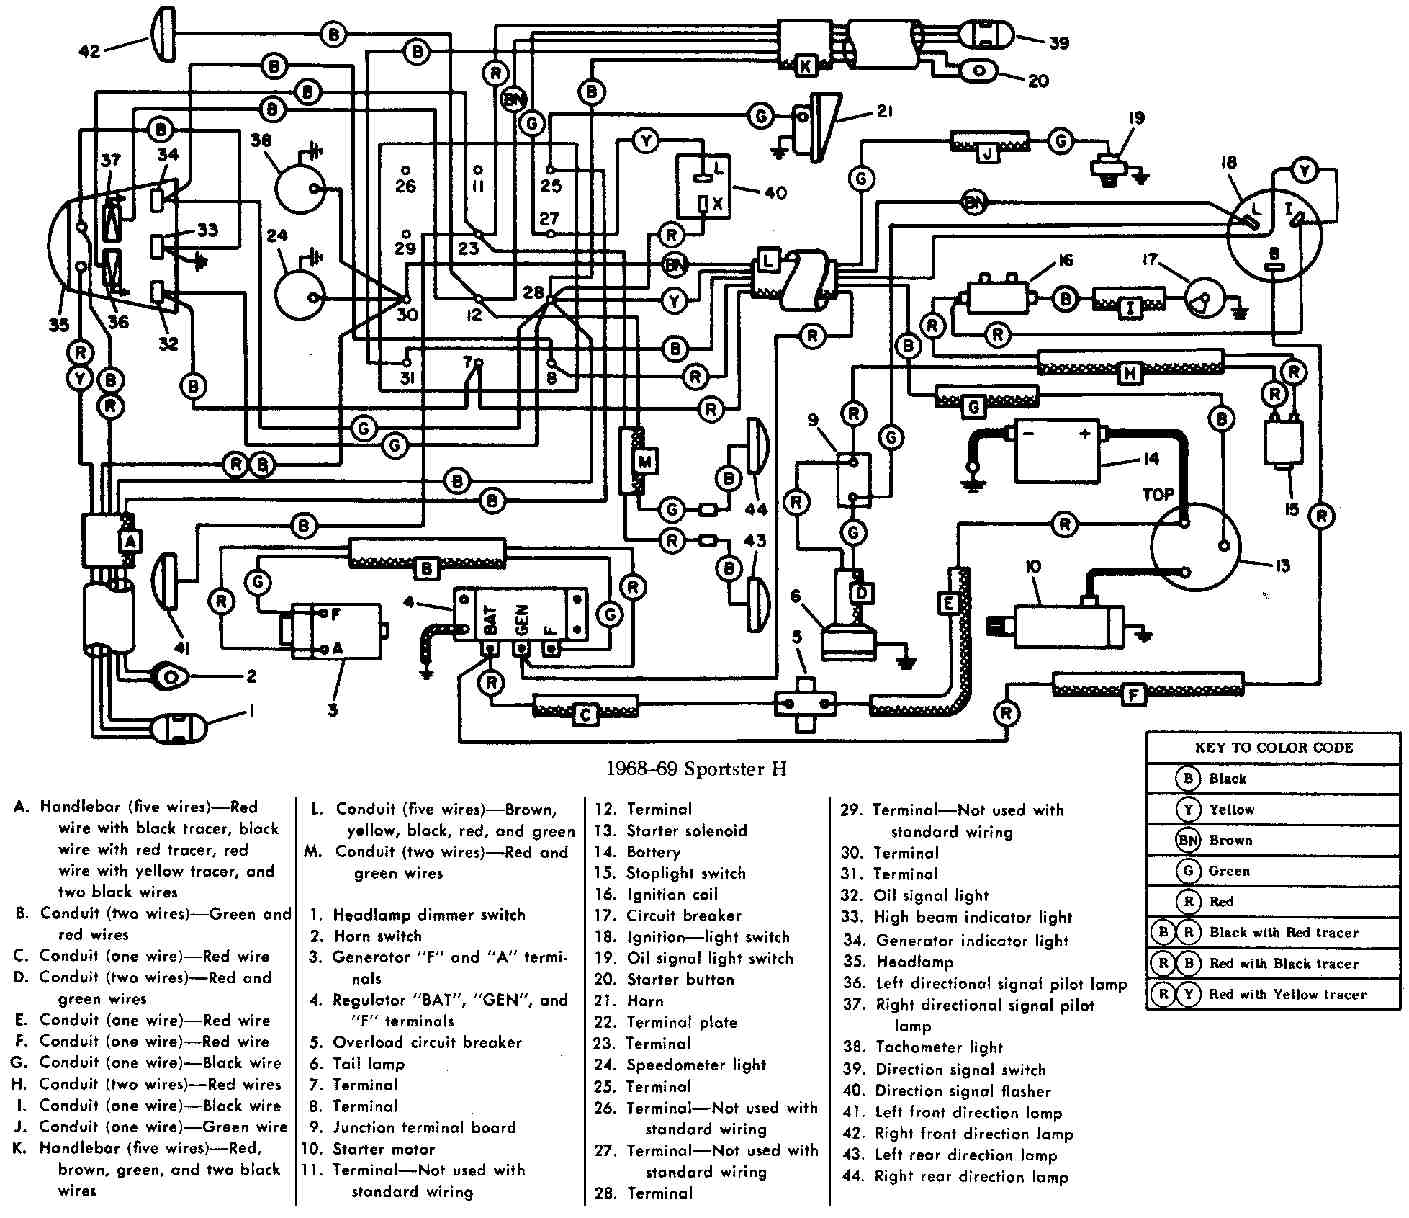 Harley+Davidson+Sportster+1968-1969+Electrical+Wiring+Diagram Harley Indicator Wiring Diagram on